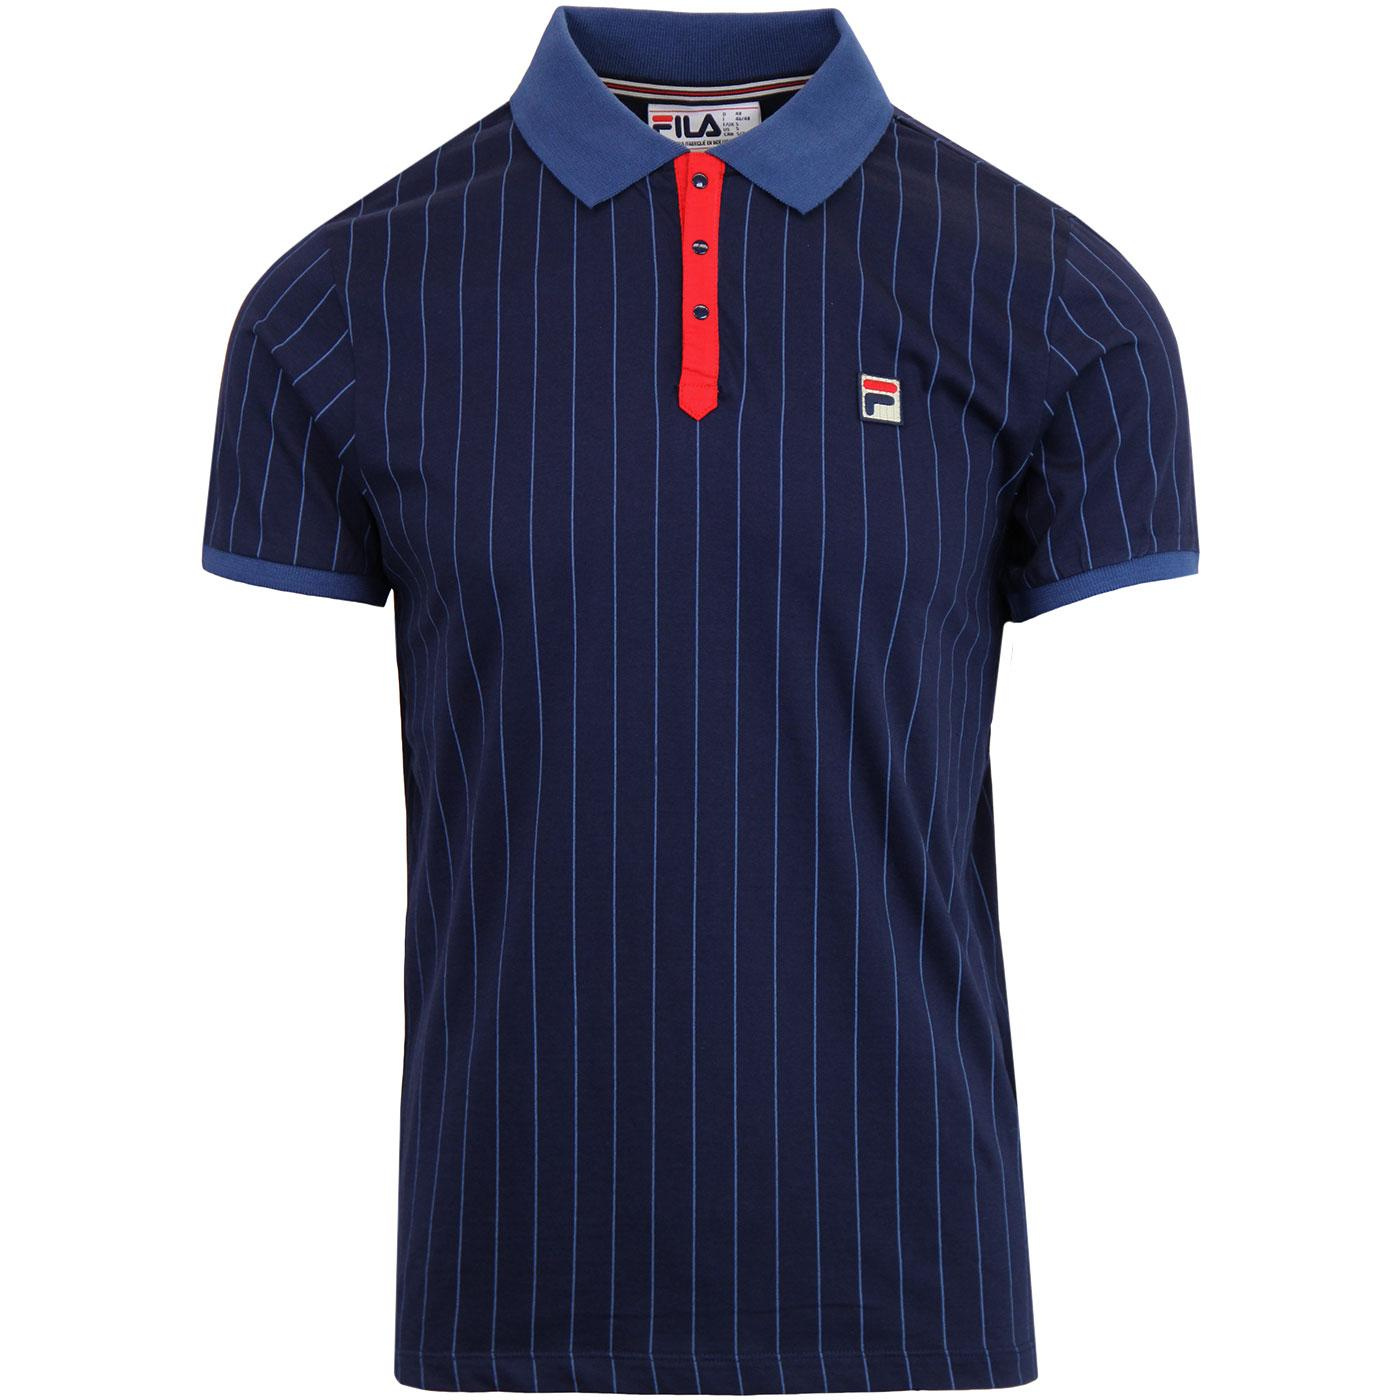 BB1 FILA VINTAGE Retro Borg Tennis Polo (PEACOAT)